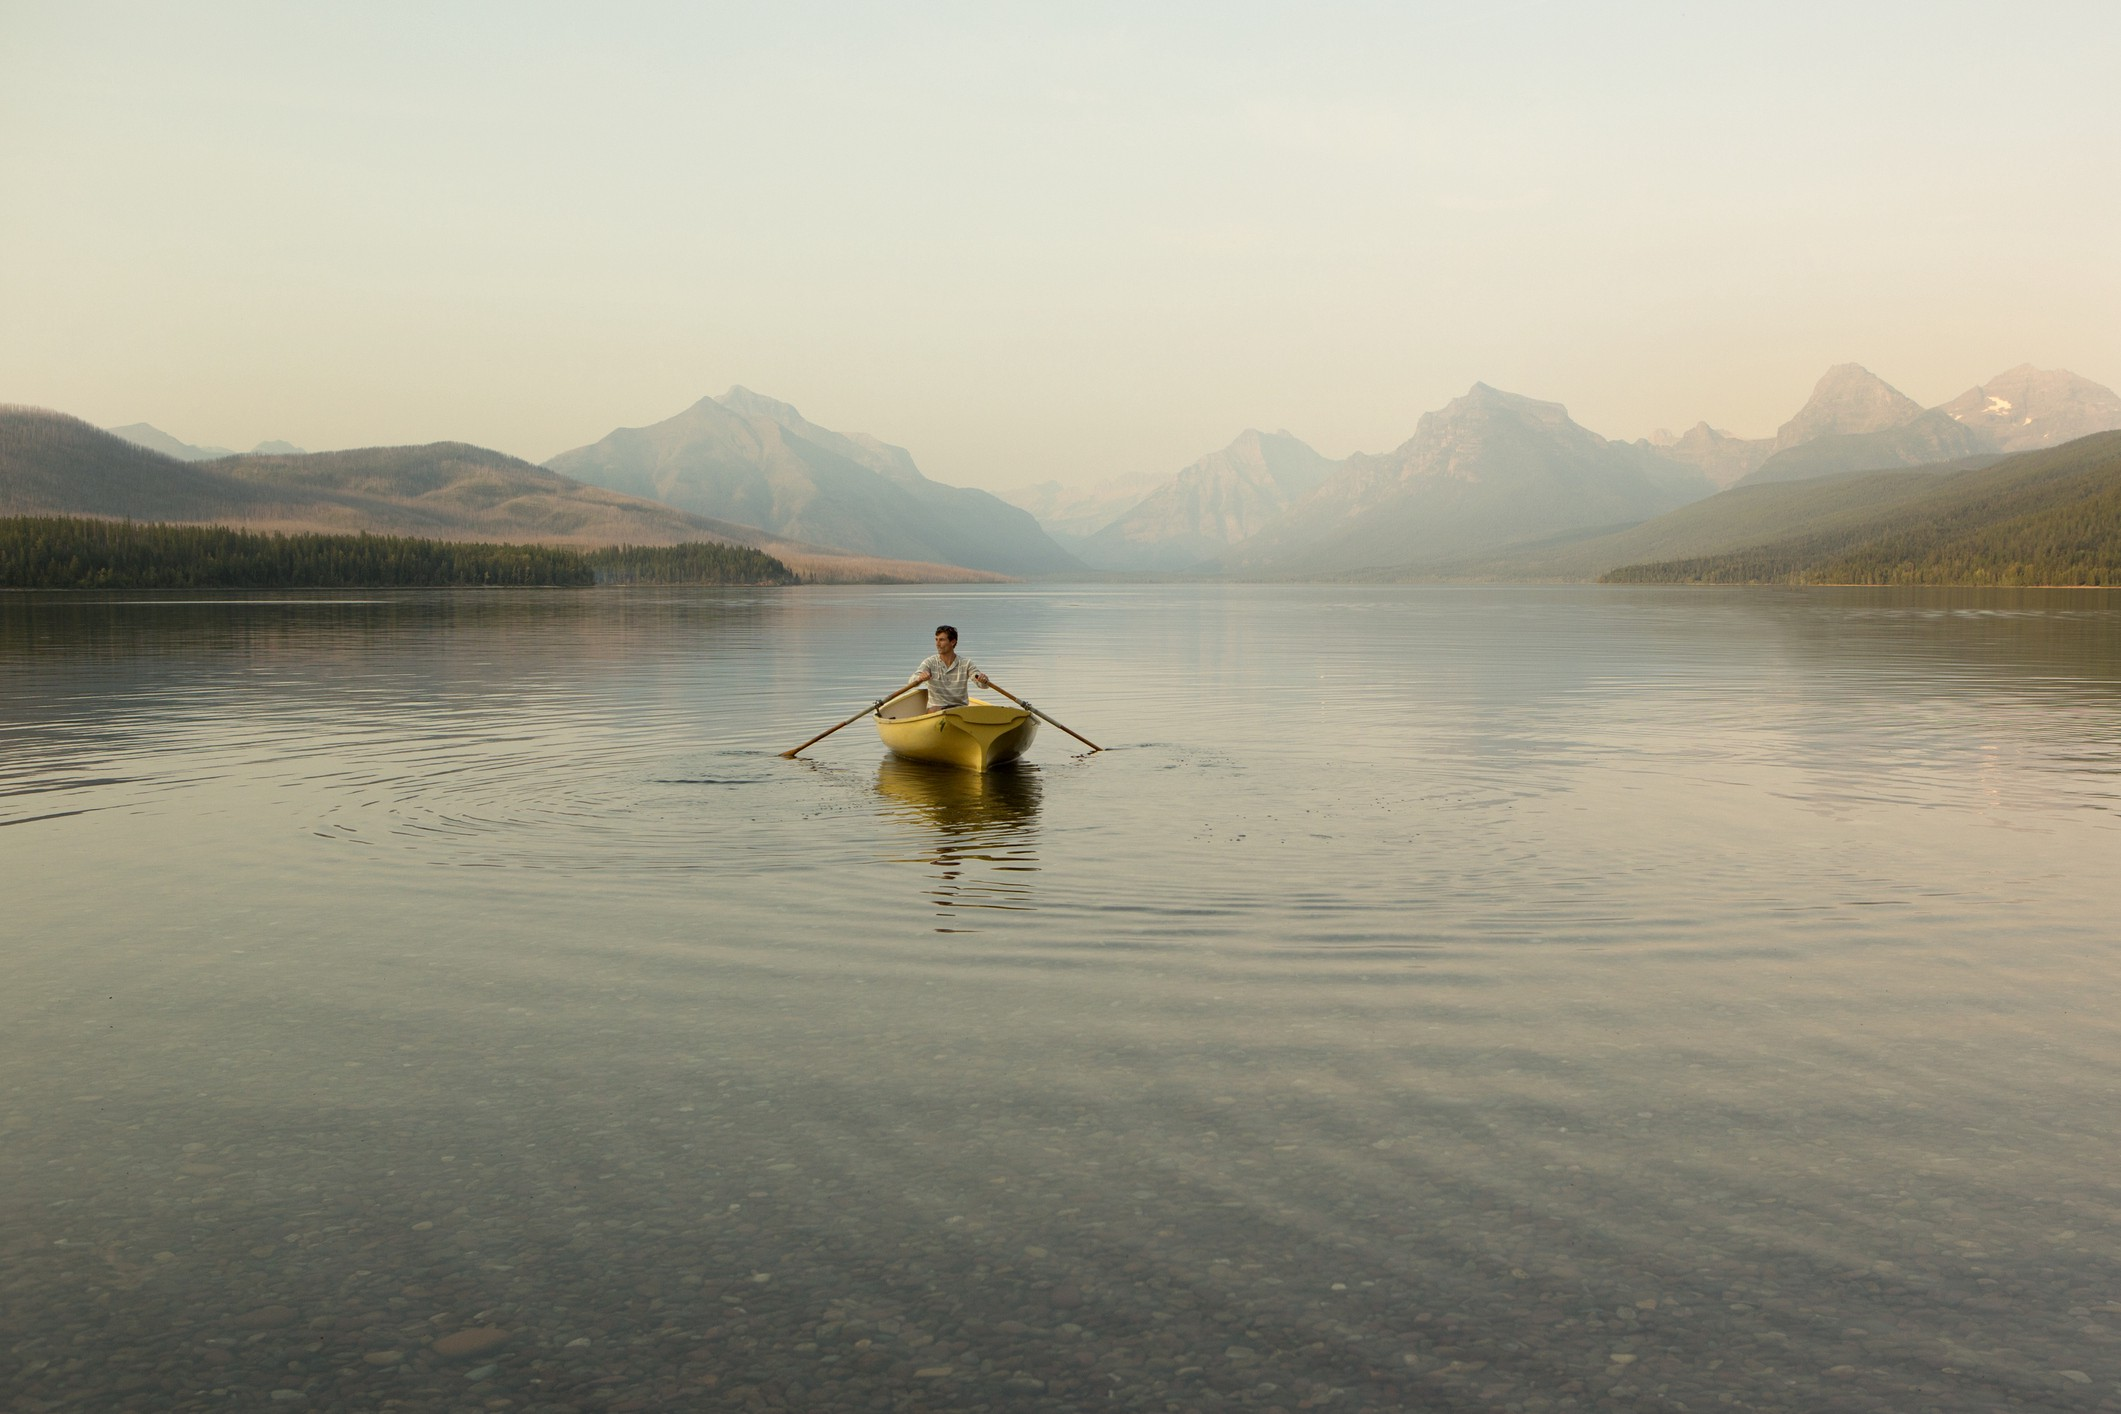 A man rowing a boat in Glacier National Park. Mood is a bit mysterious and muted.